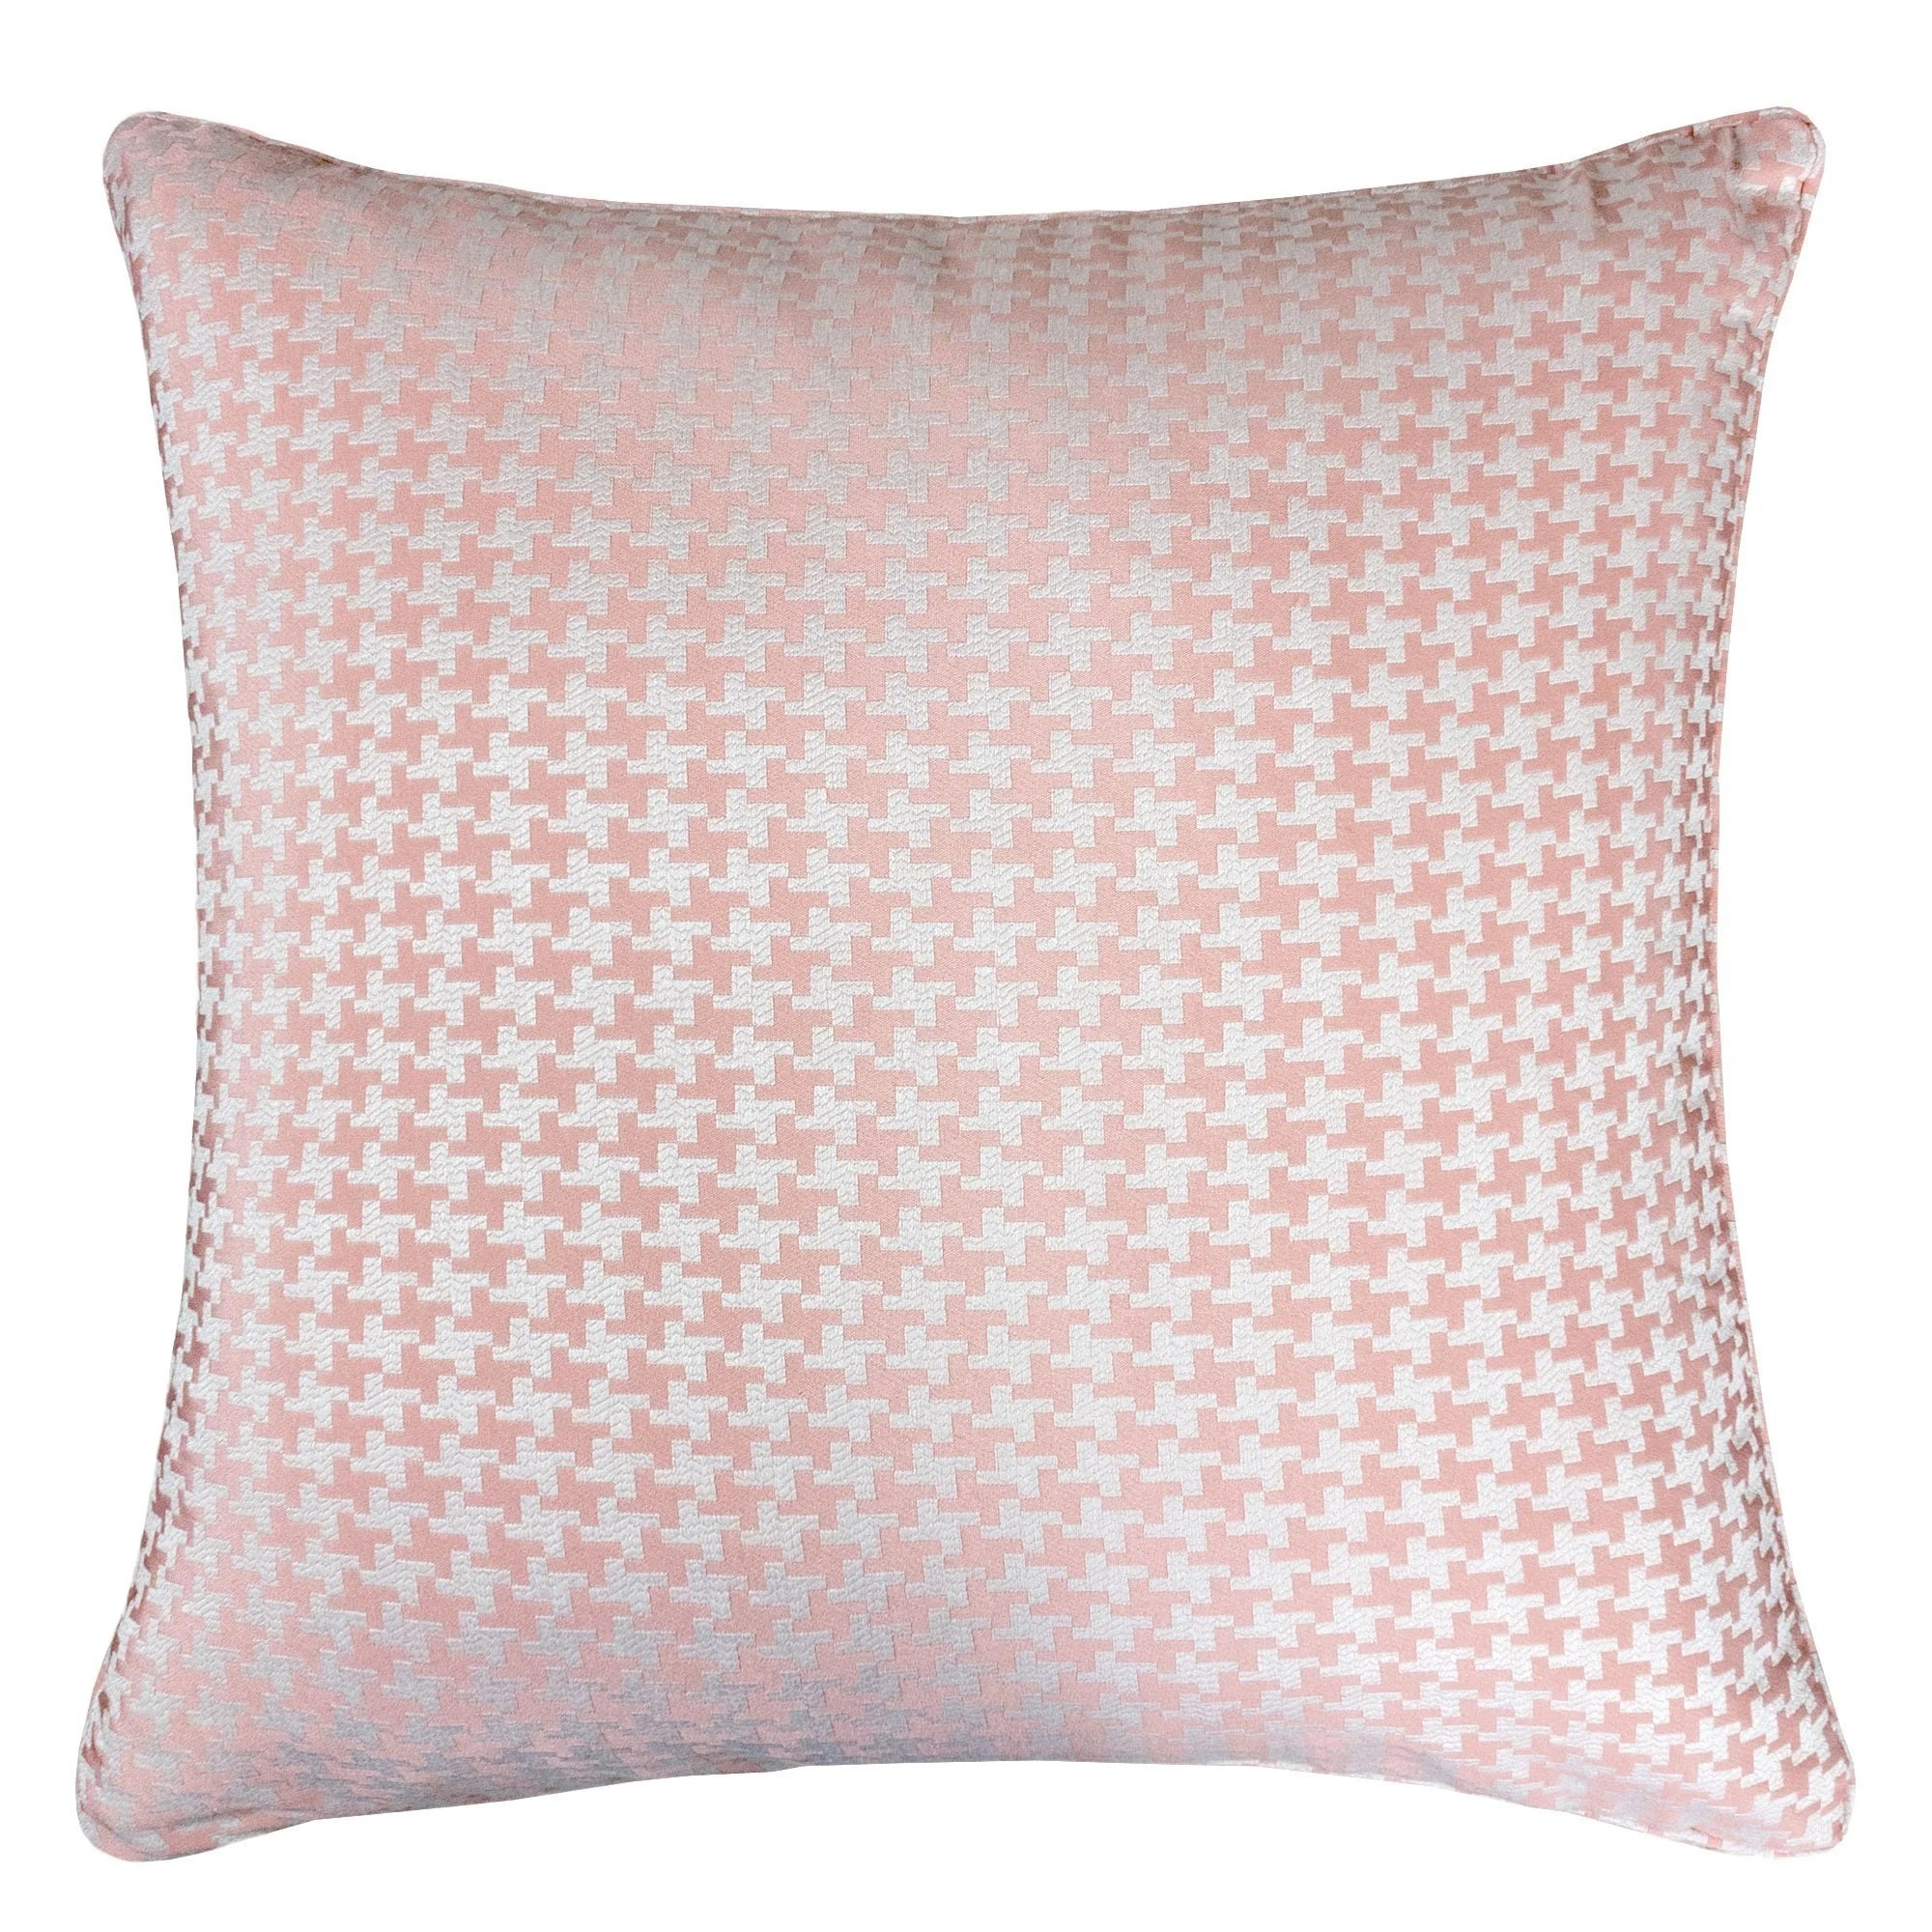 jacquard cotton throw pillow cover pink houndstooth modern silk plaid textured sofa couch decorative pillow 20 x 20 inch